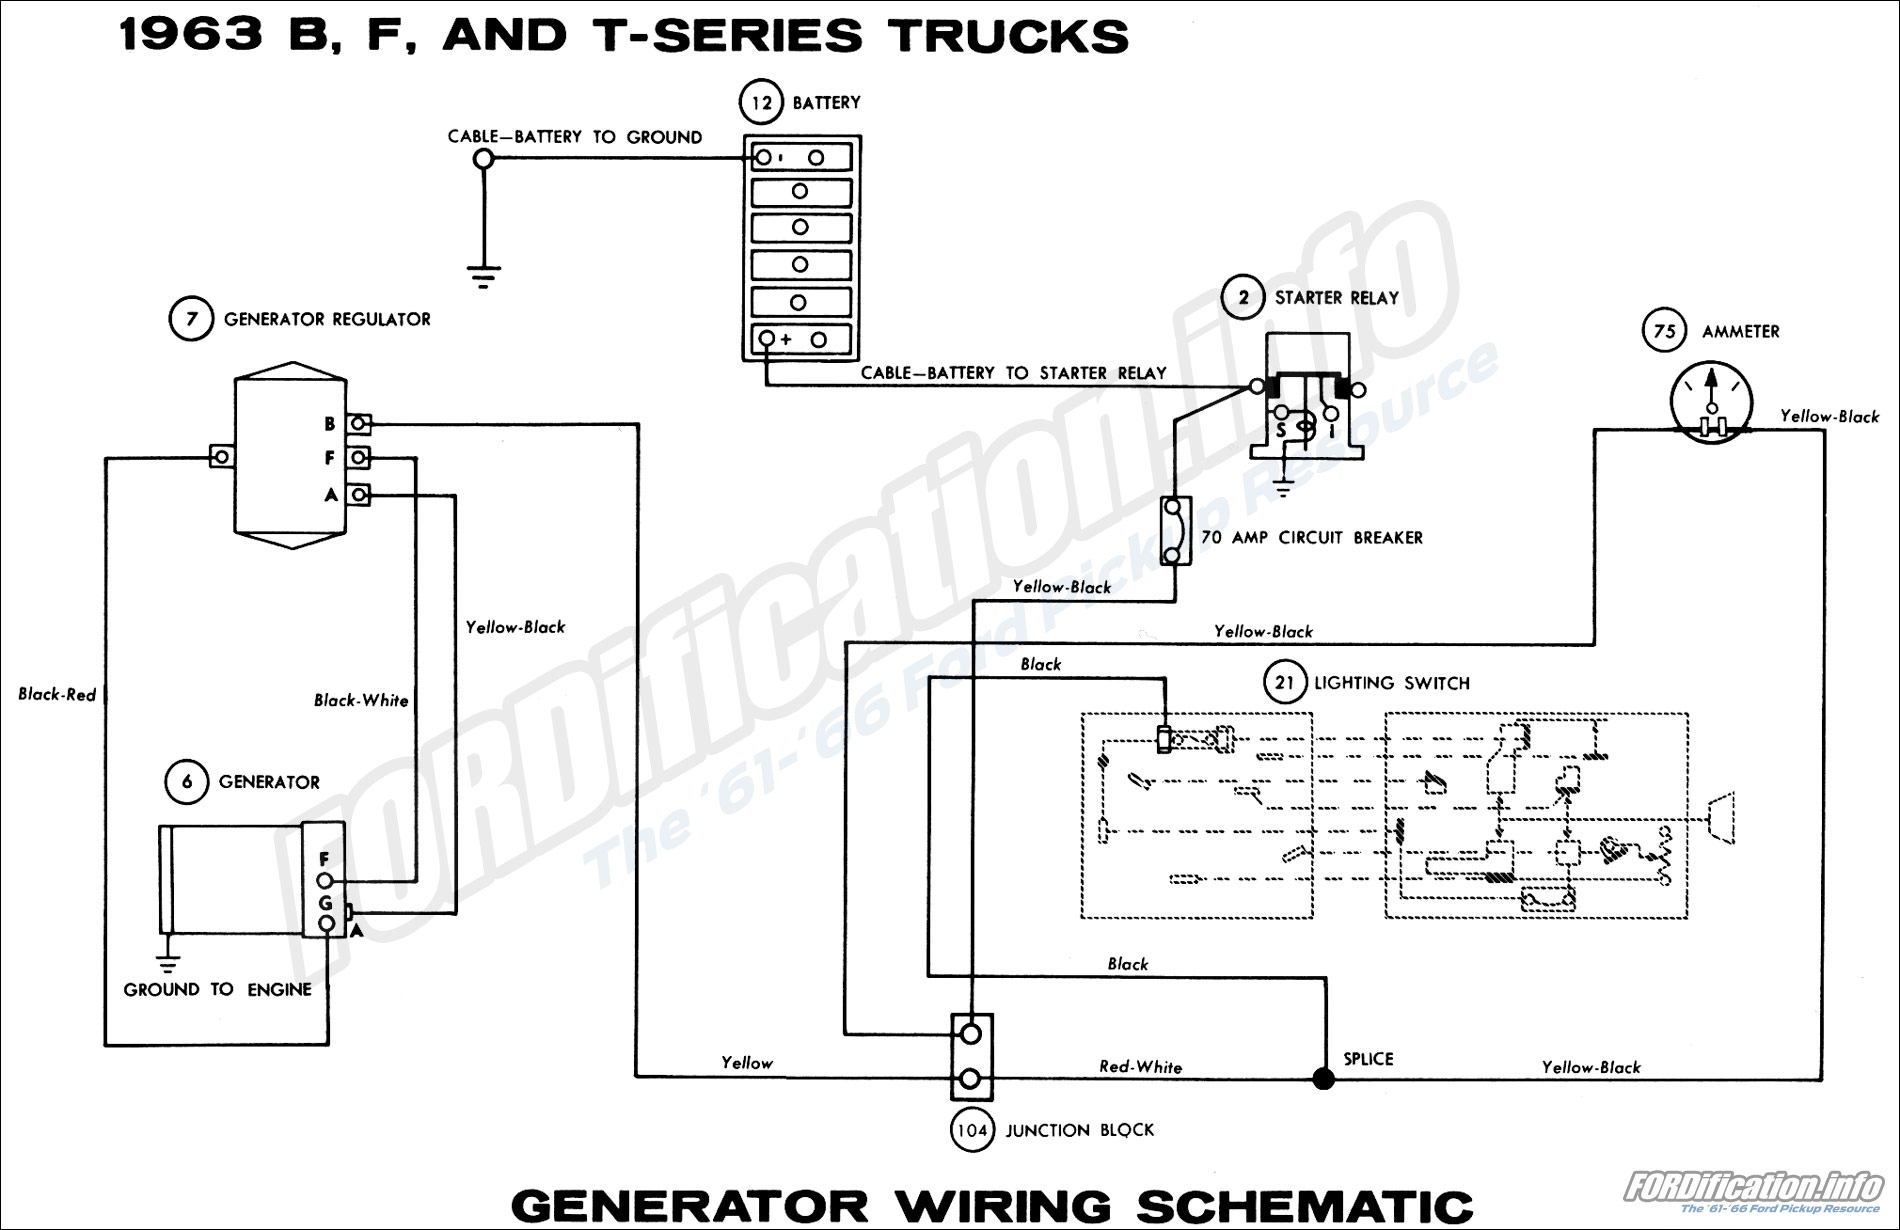 1963 Ford Truck Wiring Diagrams - FORDification.info - The '61-'66 Ford  Pickup ResourceFORDification.info